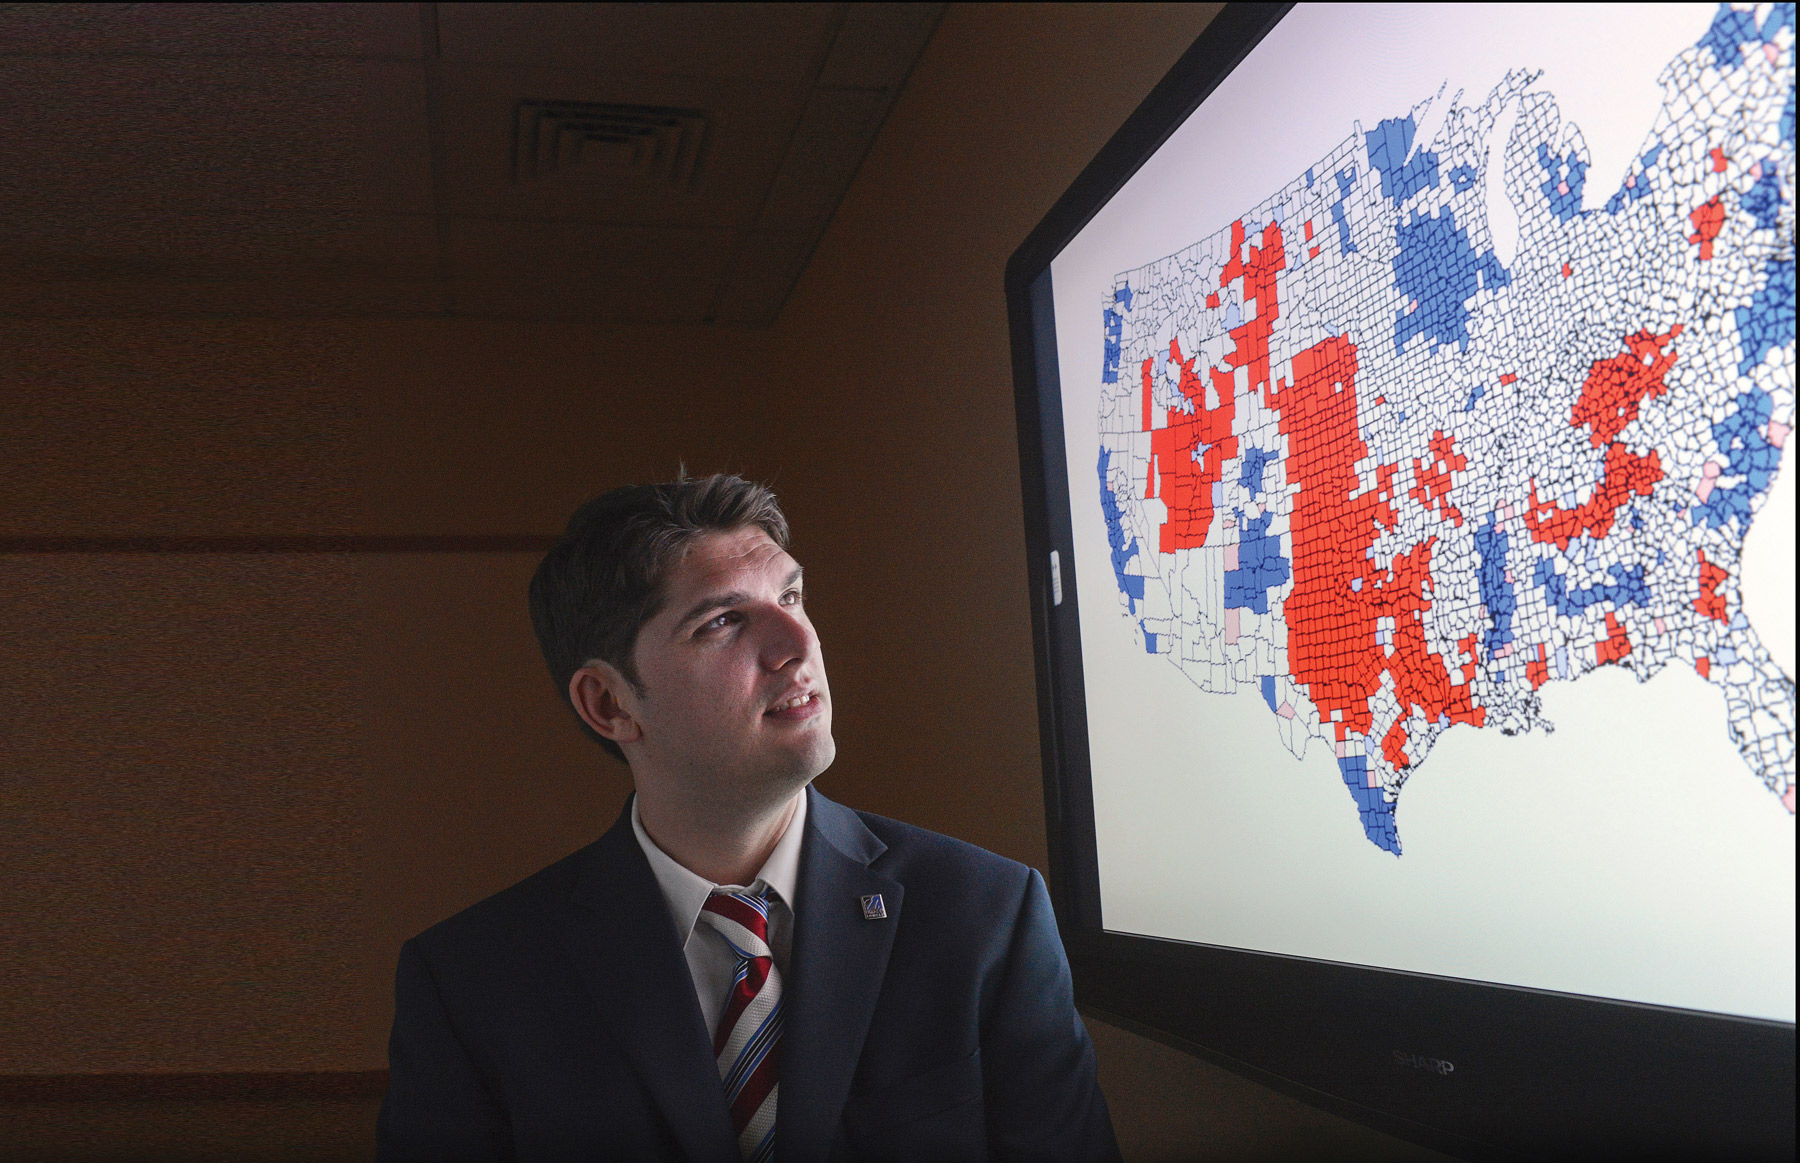 Prof. Joshua Dyck looks at polling map on large screen